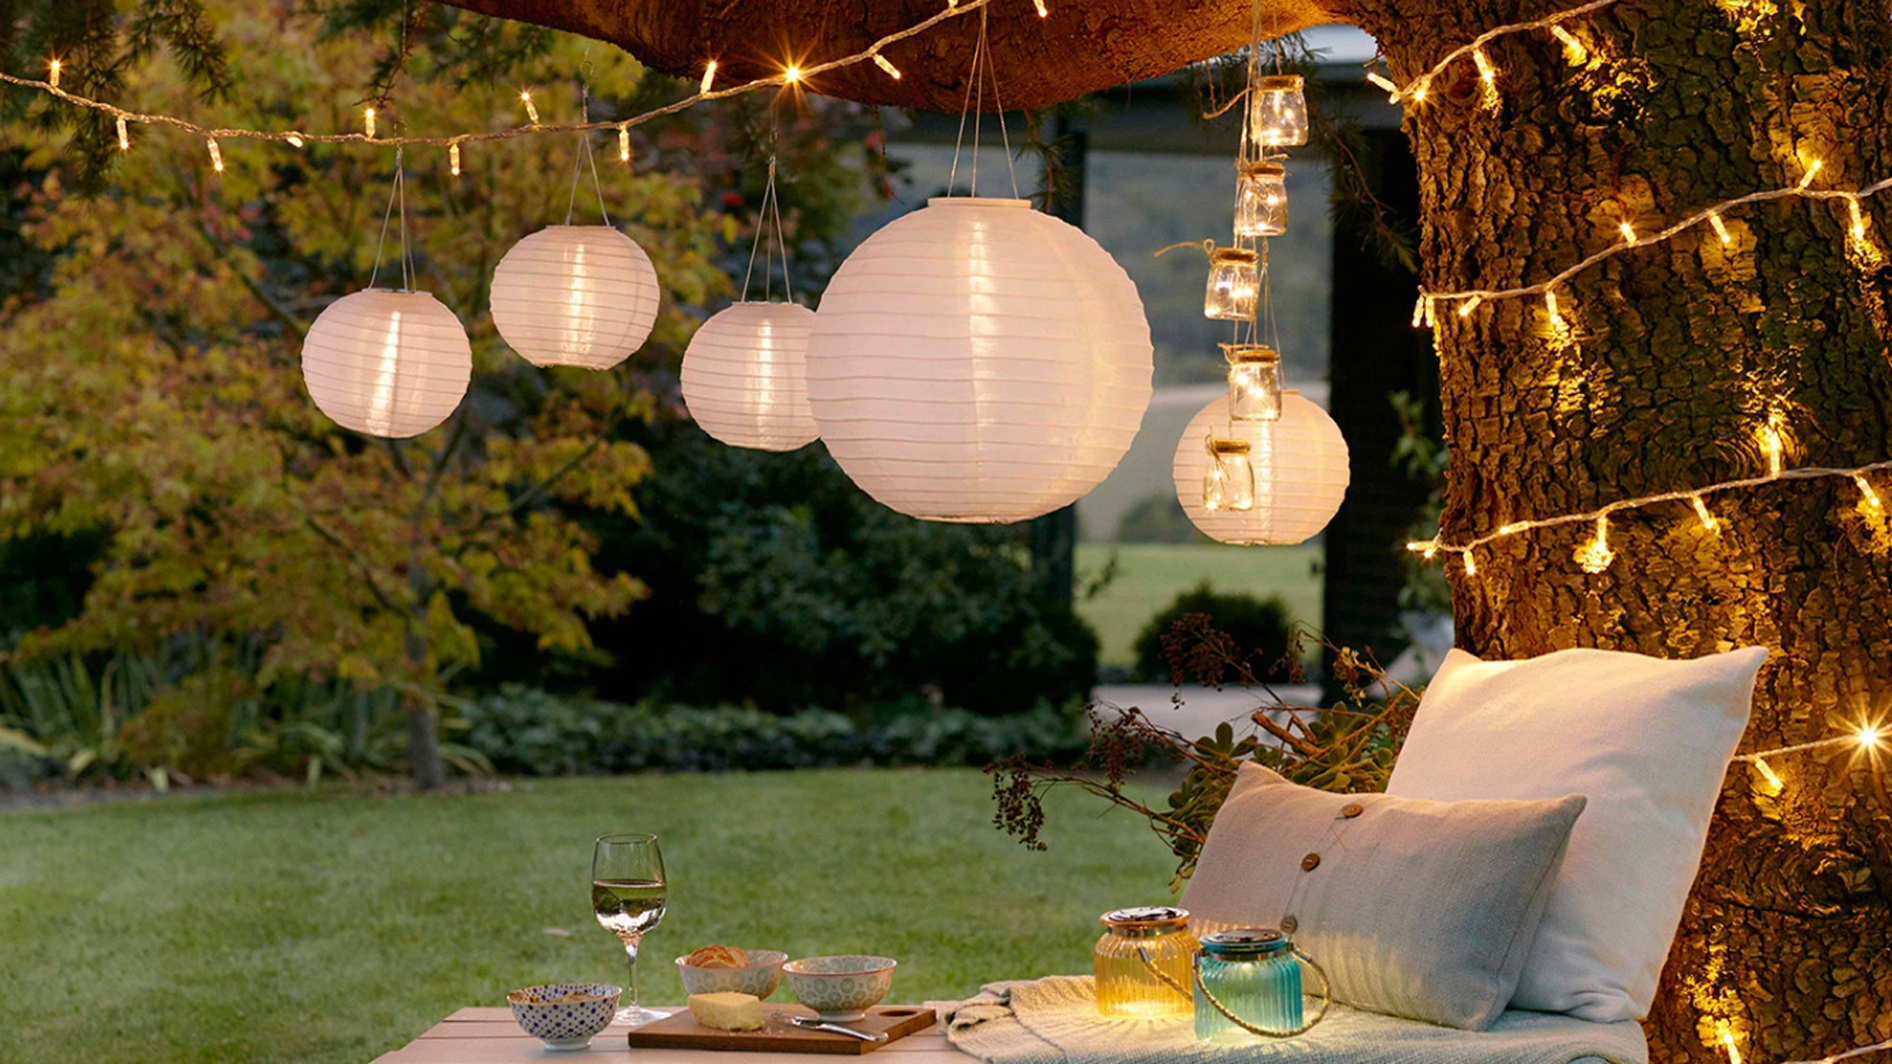 Best Outdoor Lighting 2020 8 Top Buys To Illuminate Your Garden Real Homes